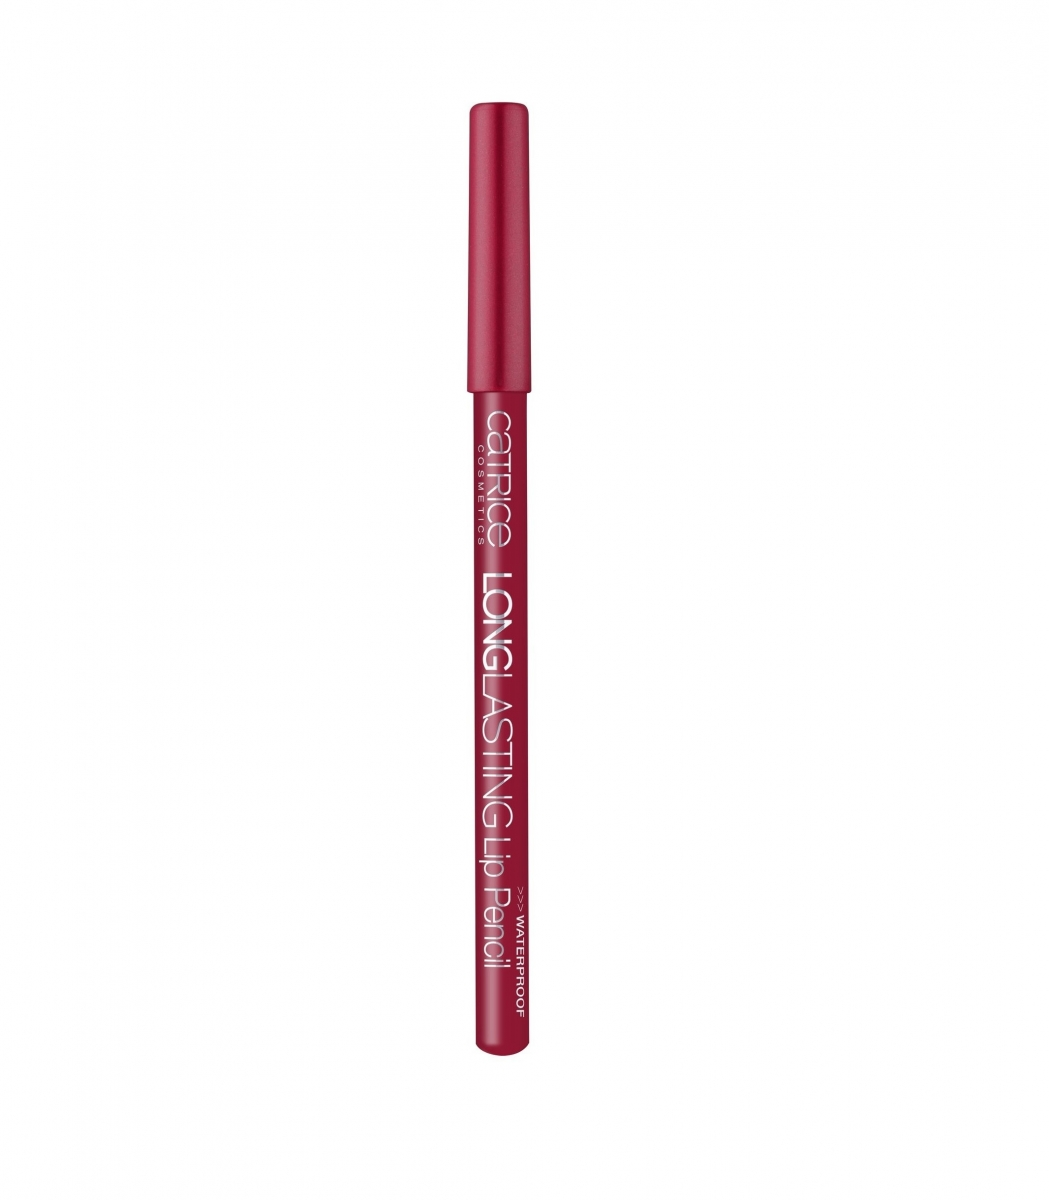 Карандаш для губ Catrice Longlasting lip pencil 130 Prince Cherry вишня